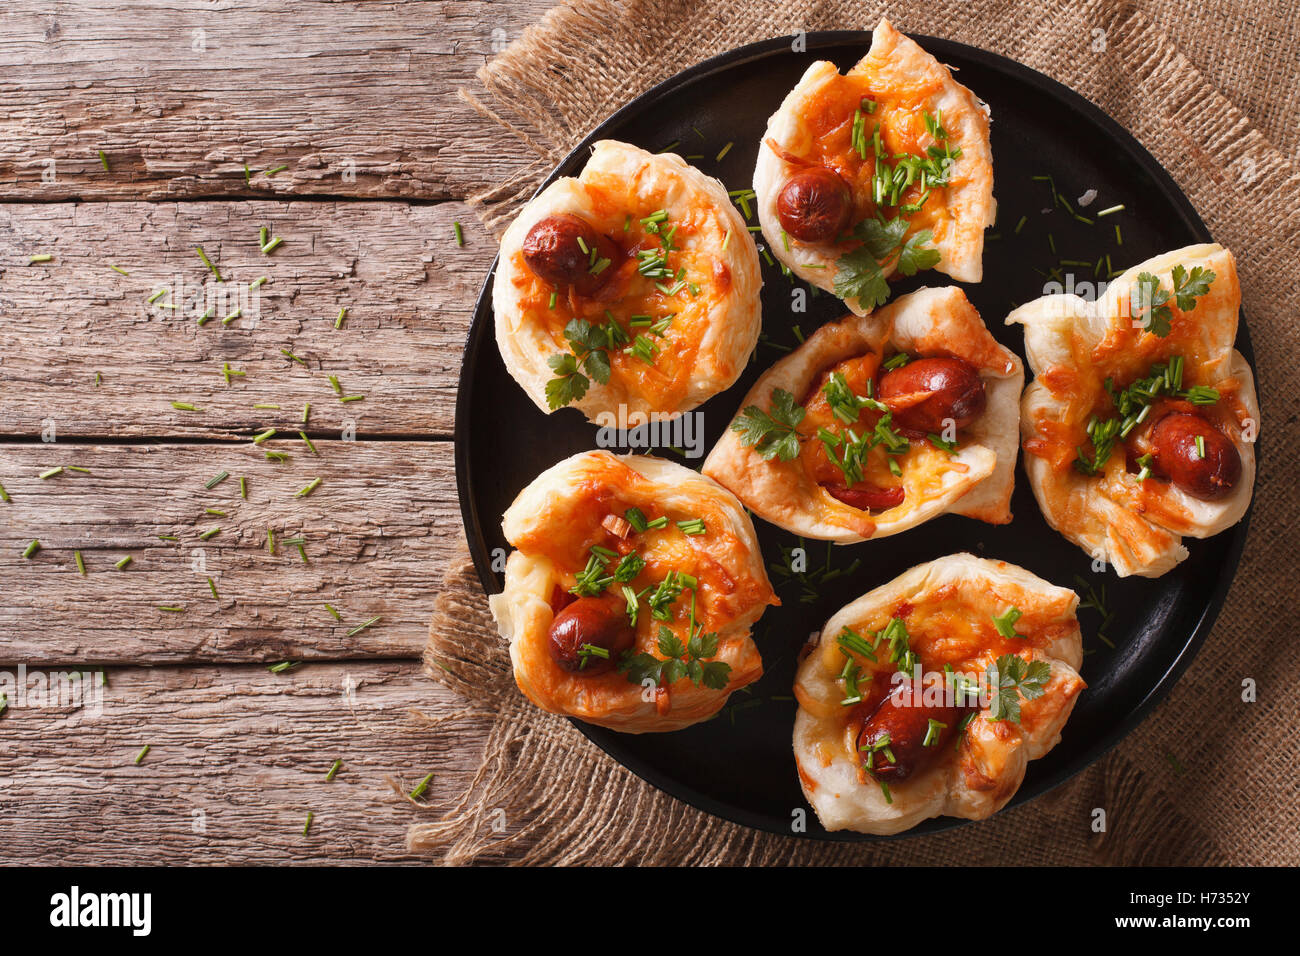 muffins stuffed with sausage and cheese on a plate. Horizontal view from above - Stock Image